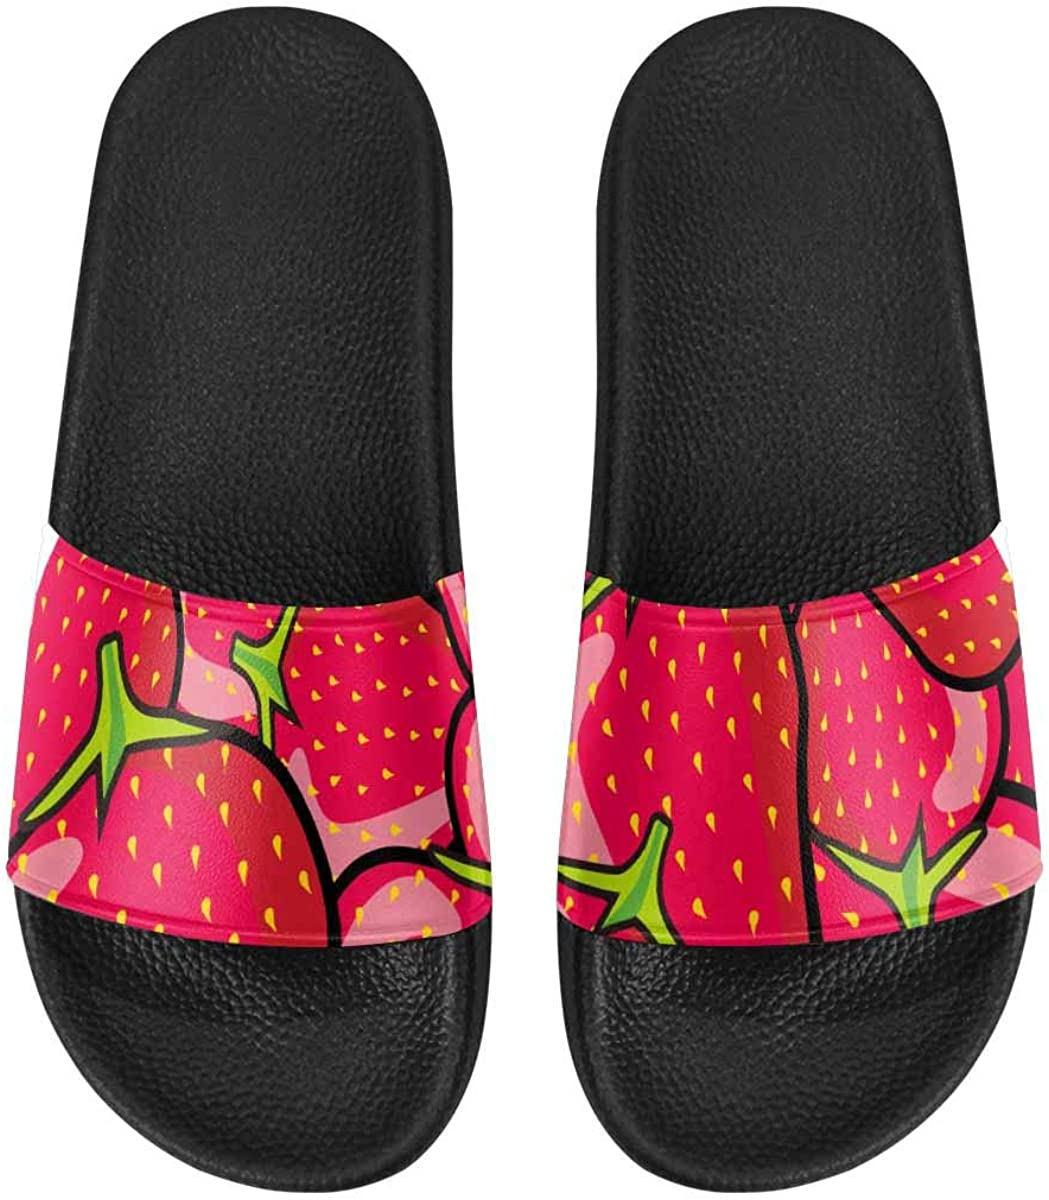 InterestPrint Slipper Sandals for Women with Soft Material Decorative Floral Pattern